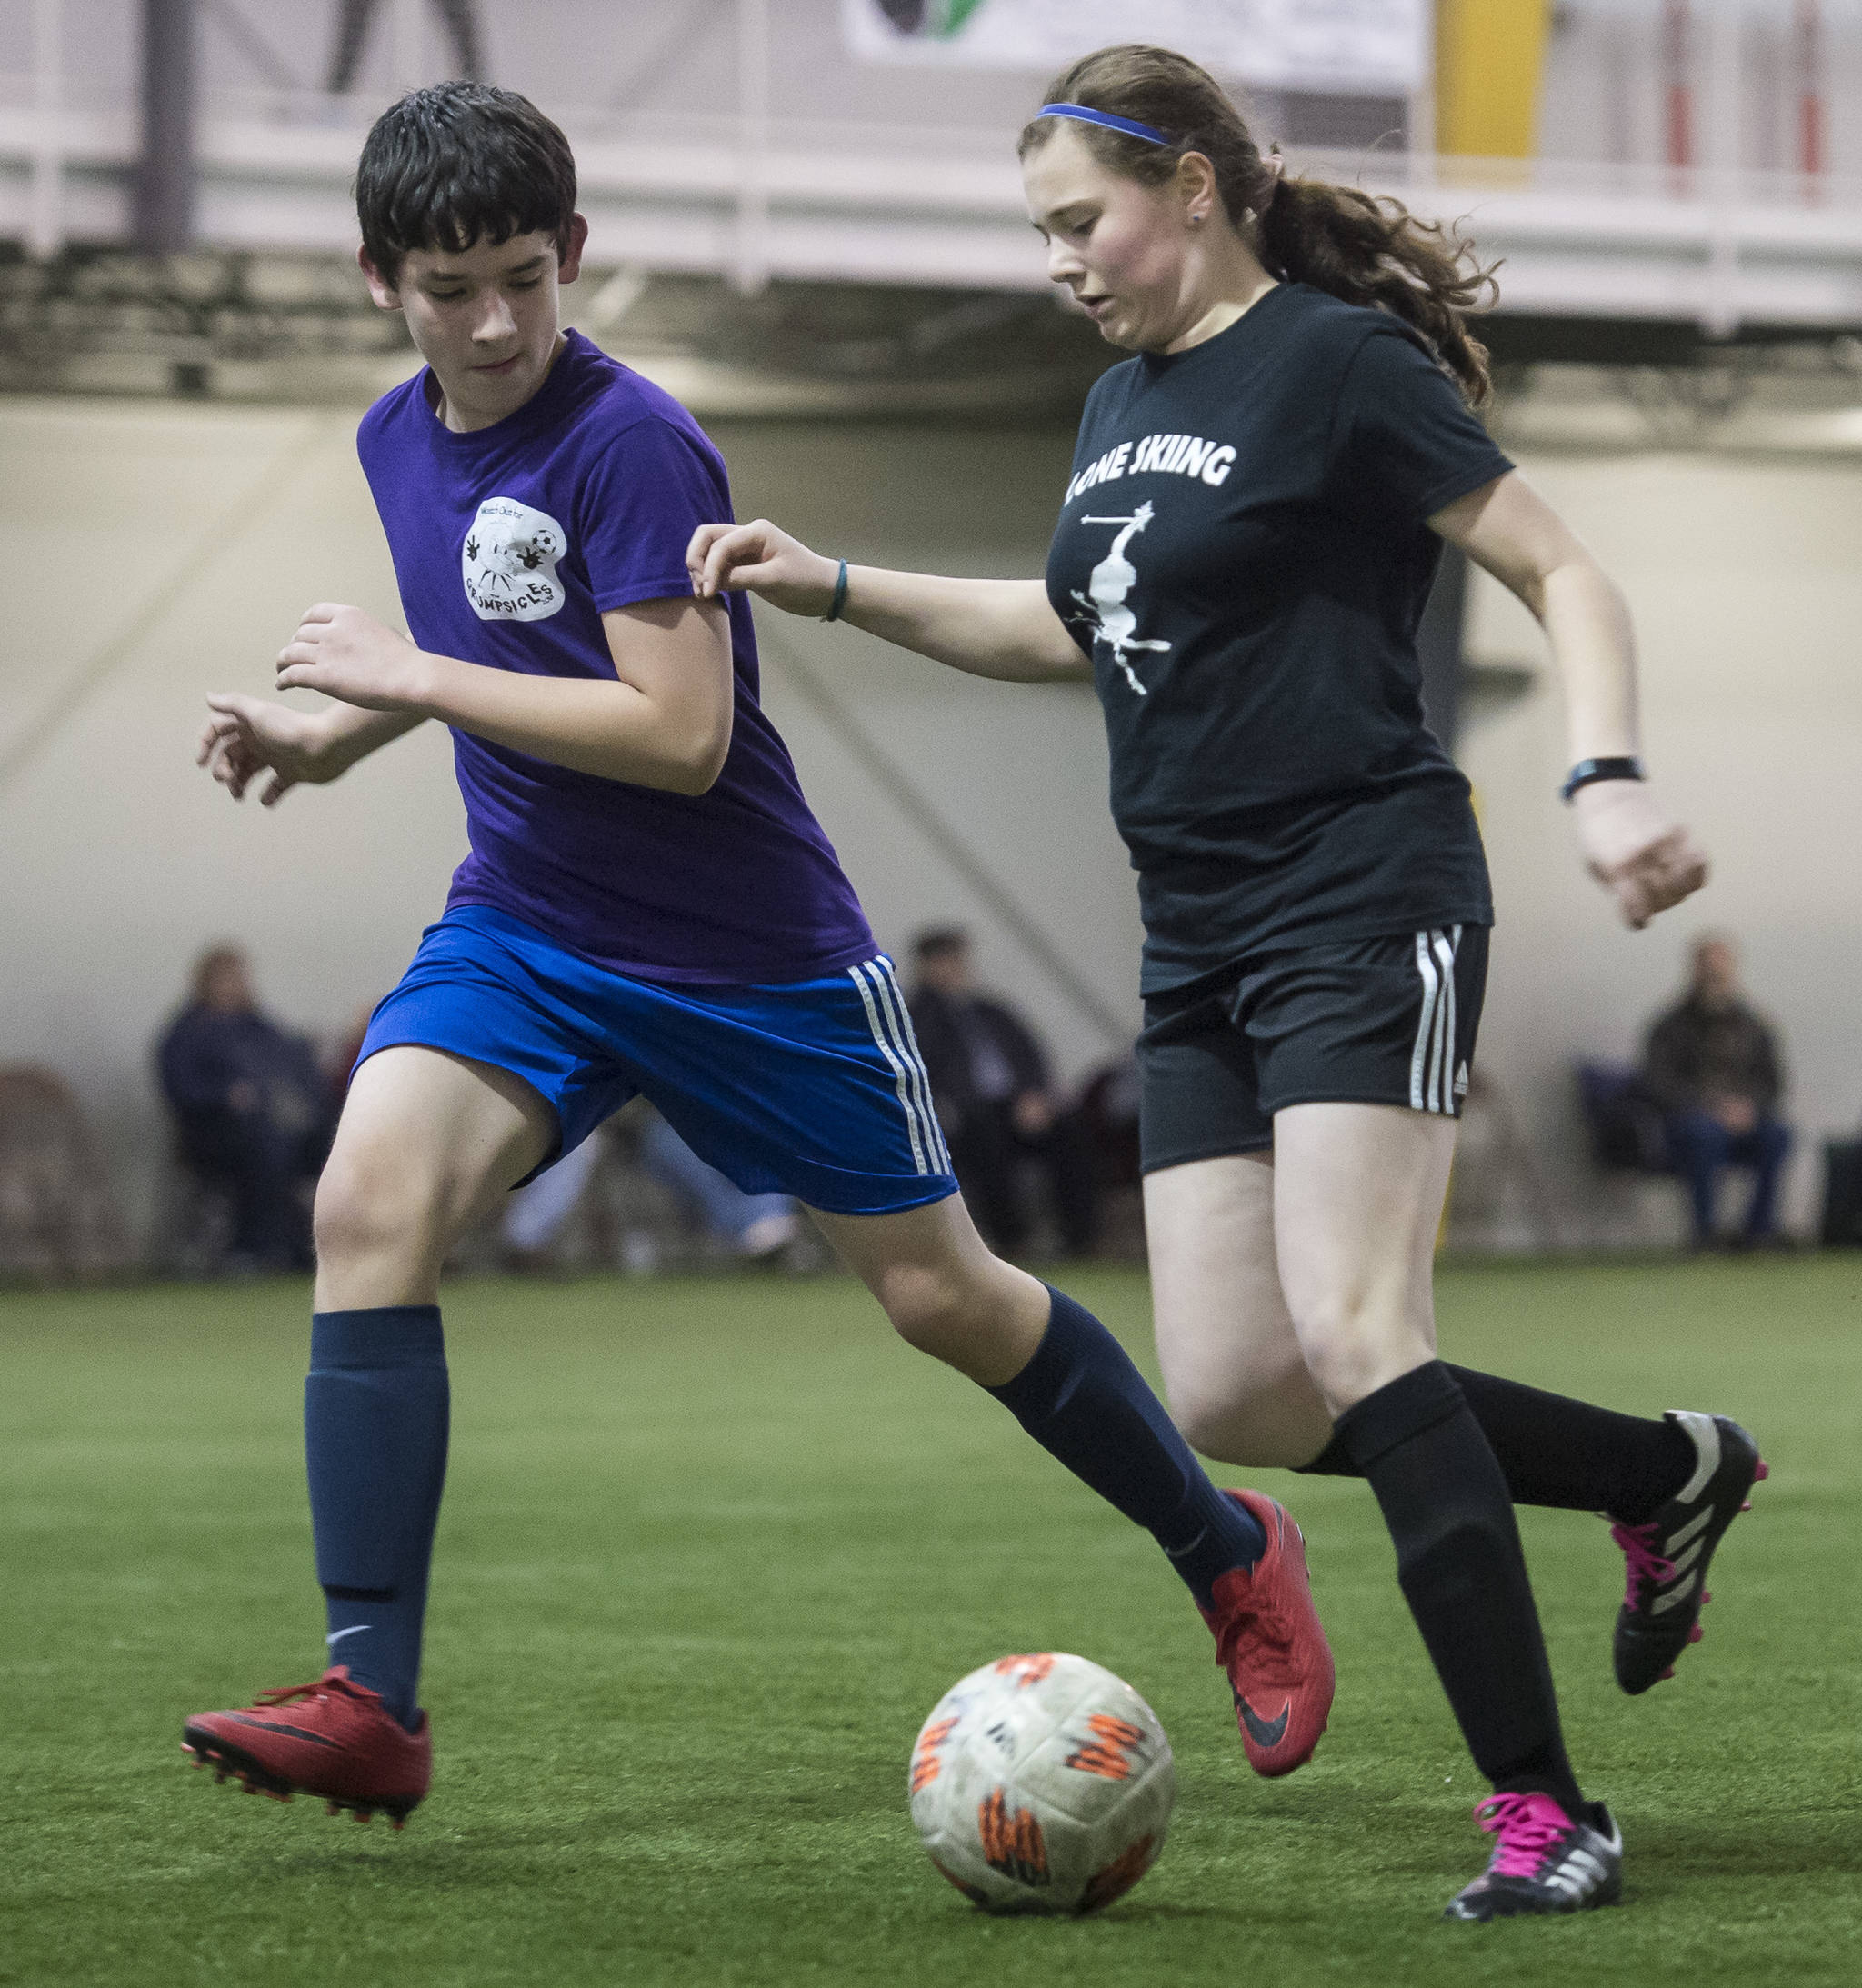 Grumpsicles play against Gone Skiing at the annual Holiday Cup Soccer Tournament at the Wells Fargo Dimond Park Field House on Wednesday, Dec. 26, 2018. (Michael Penn   Juneau Empire)